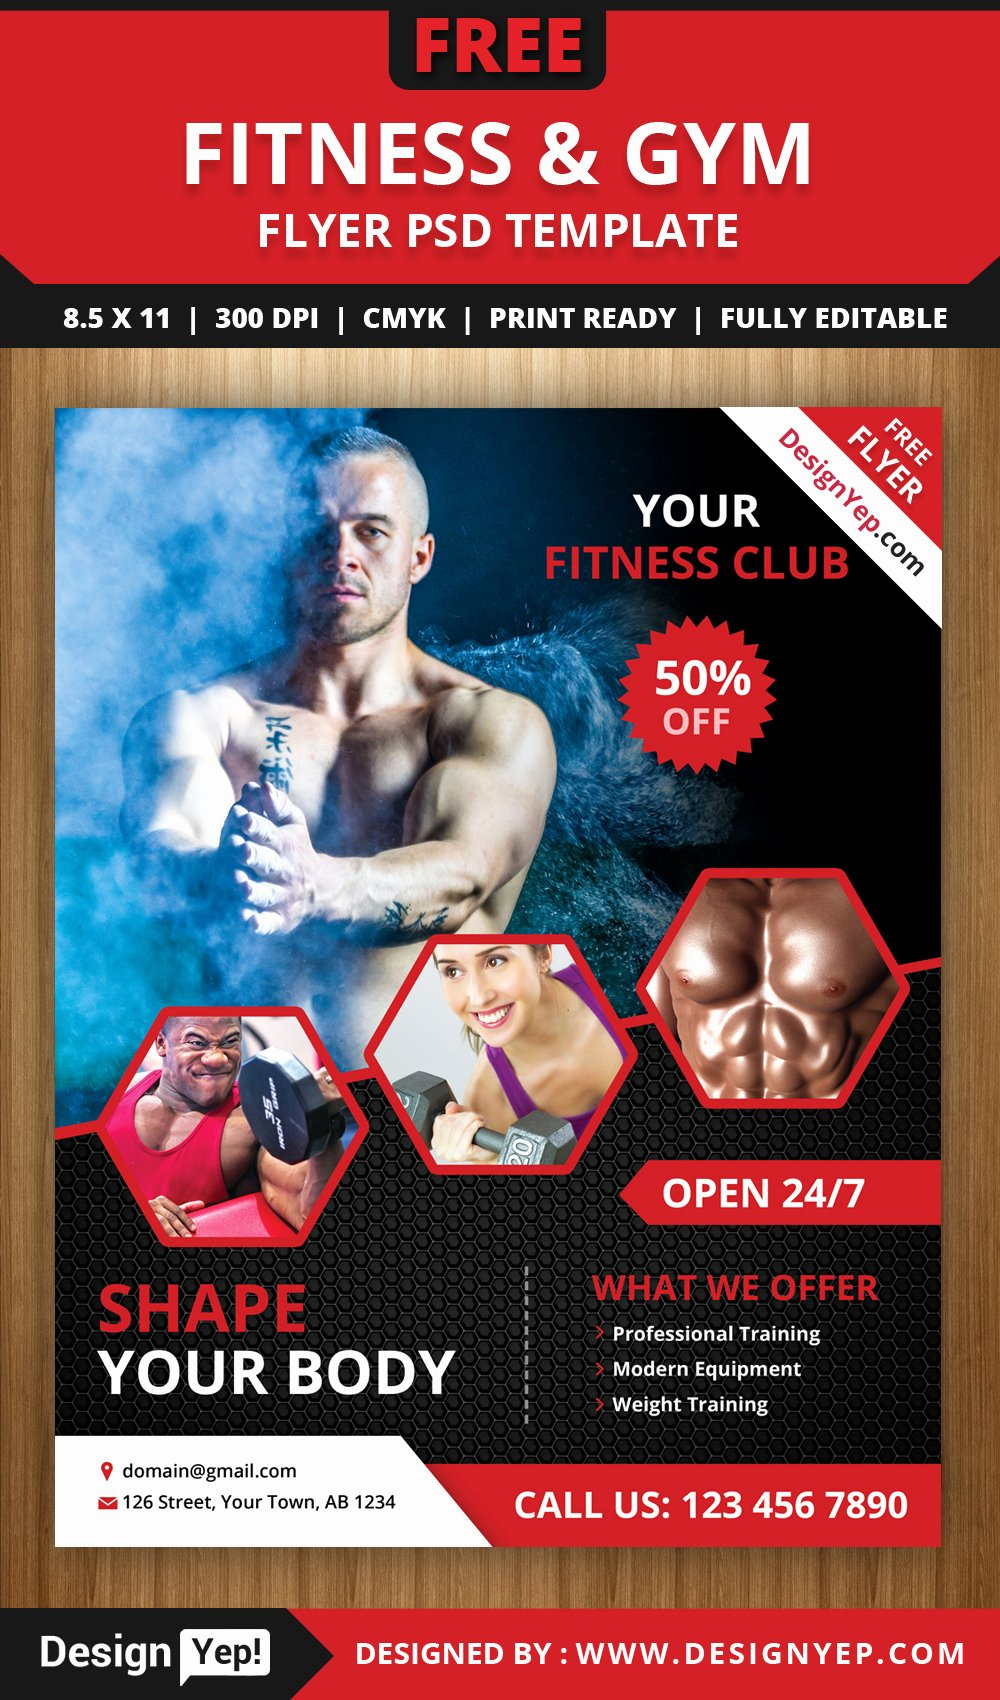 Fitness Flyer Template Free Luxury Free Fitness and Gym Flyer Psd Template Designyep